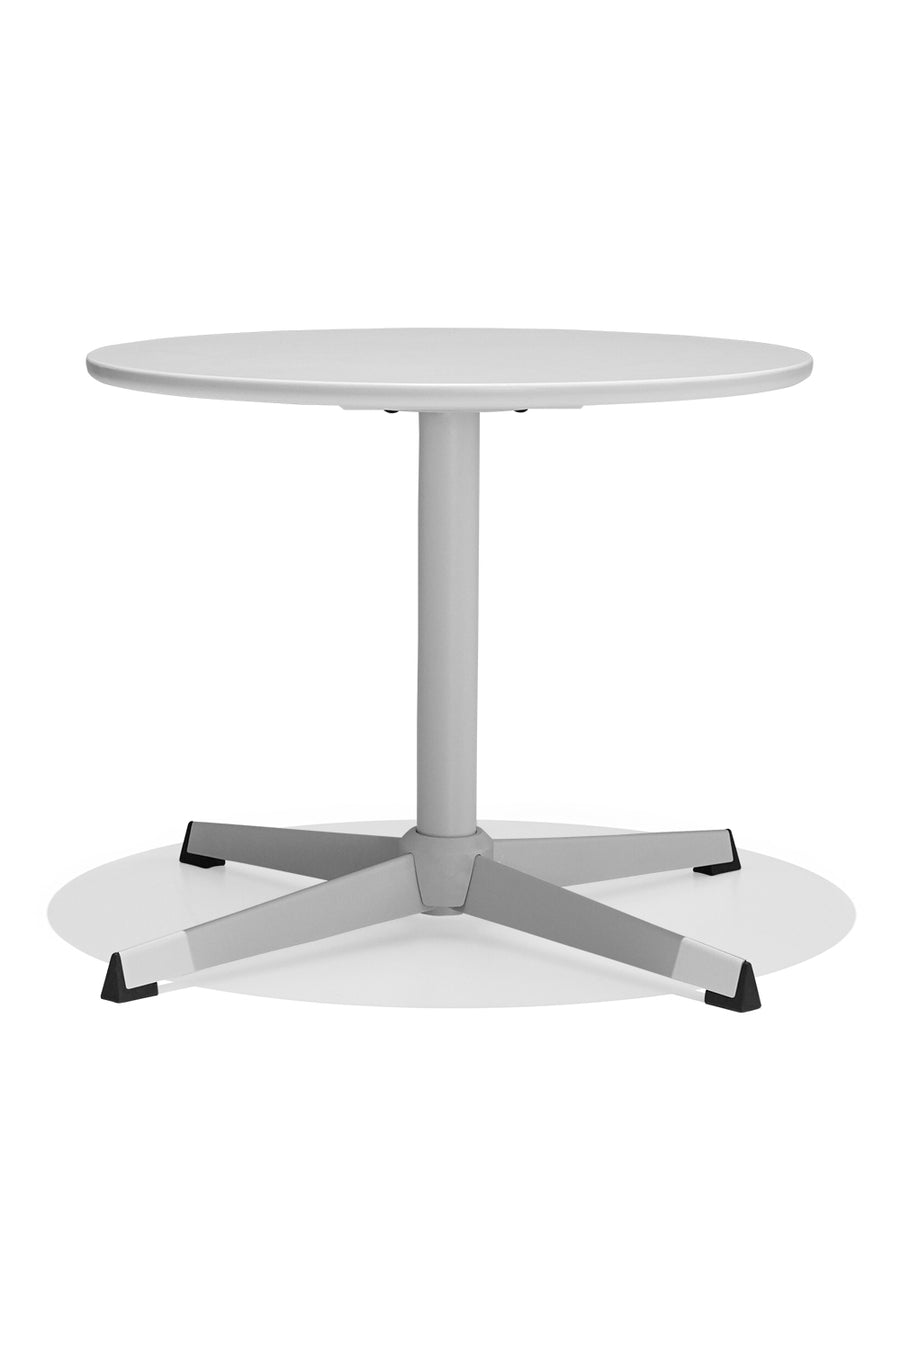 DENNIS side table